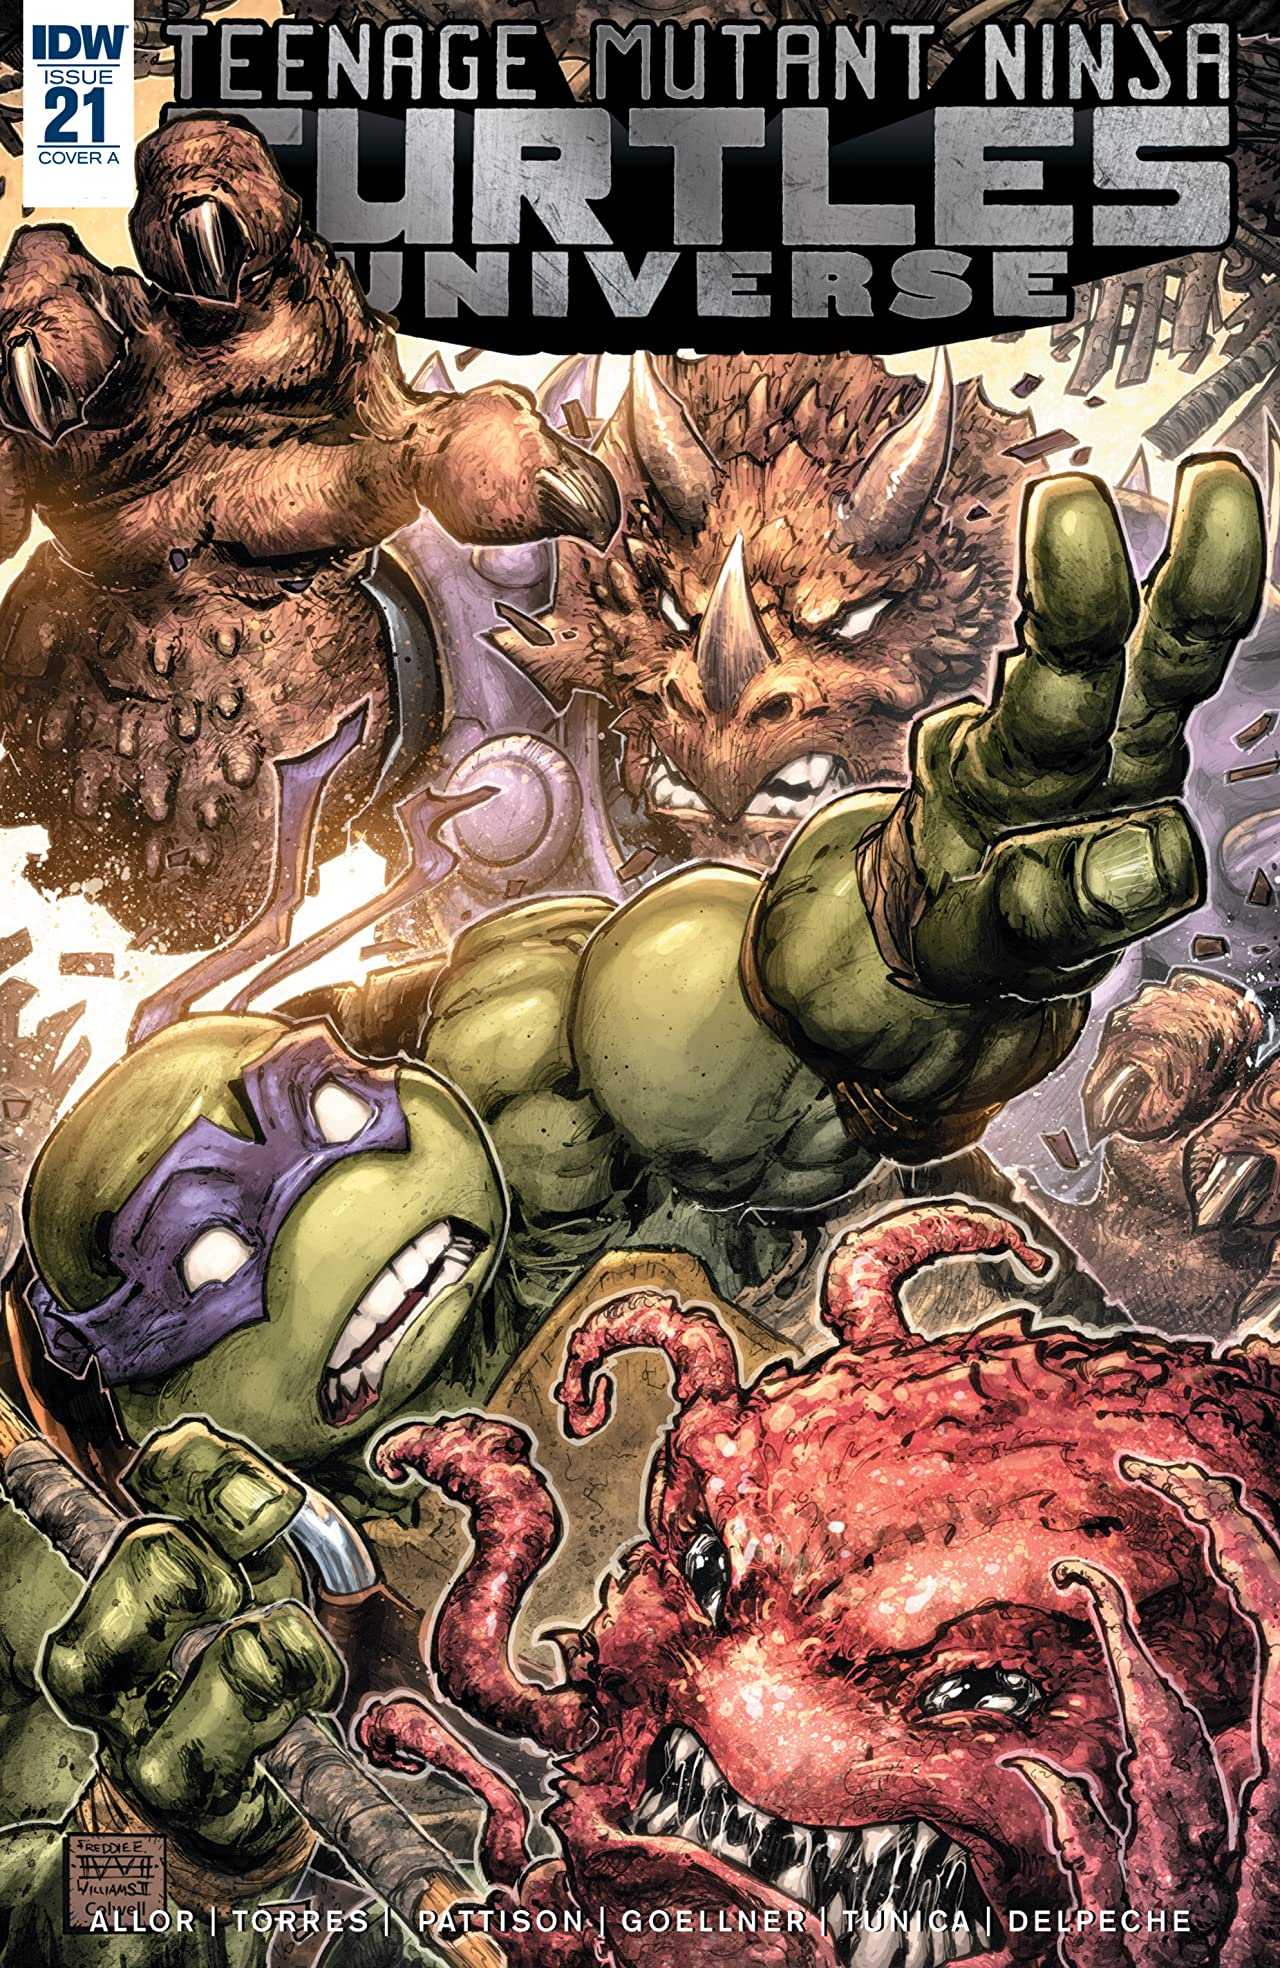 Teenage Mutant Ninja Turtles Universe #21